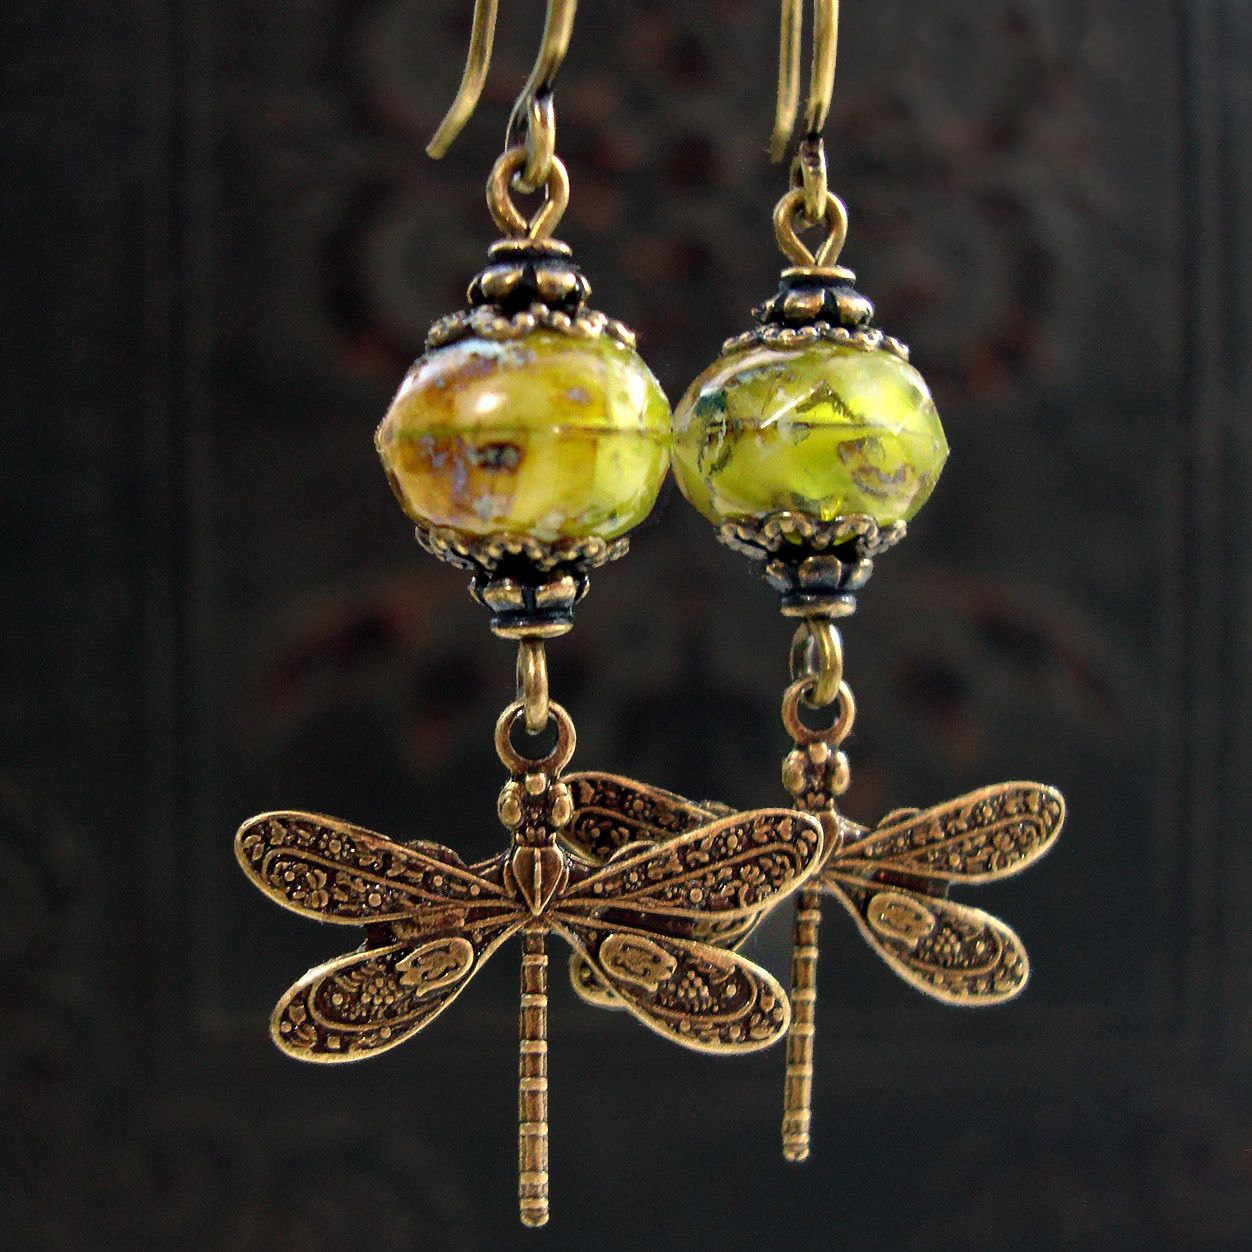 2e868be9f Swirly Green Victorian Dragonfly Earrings - Antiqued brass and hand made  artisan Czech glass beads. Nature inspired jewelry by Ardent Hearts Designs.